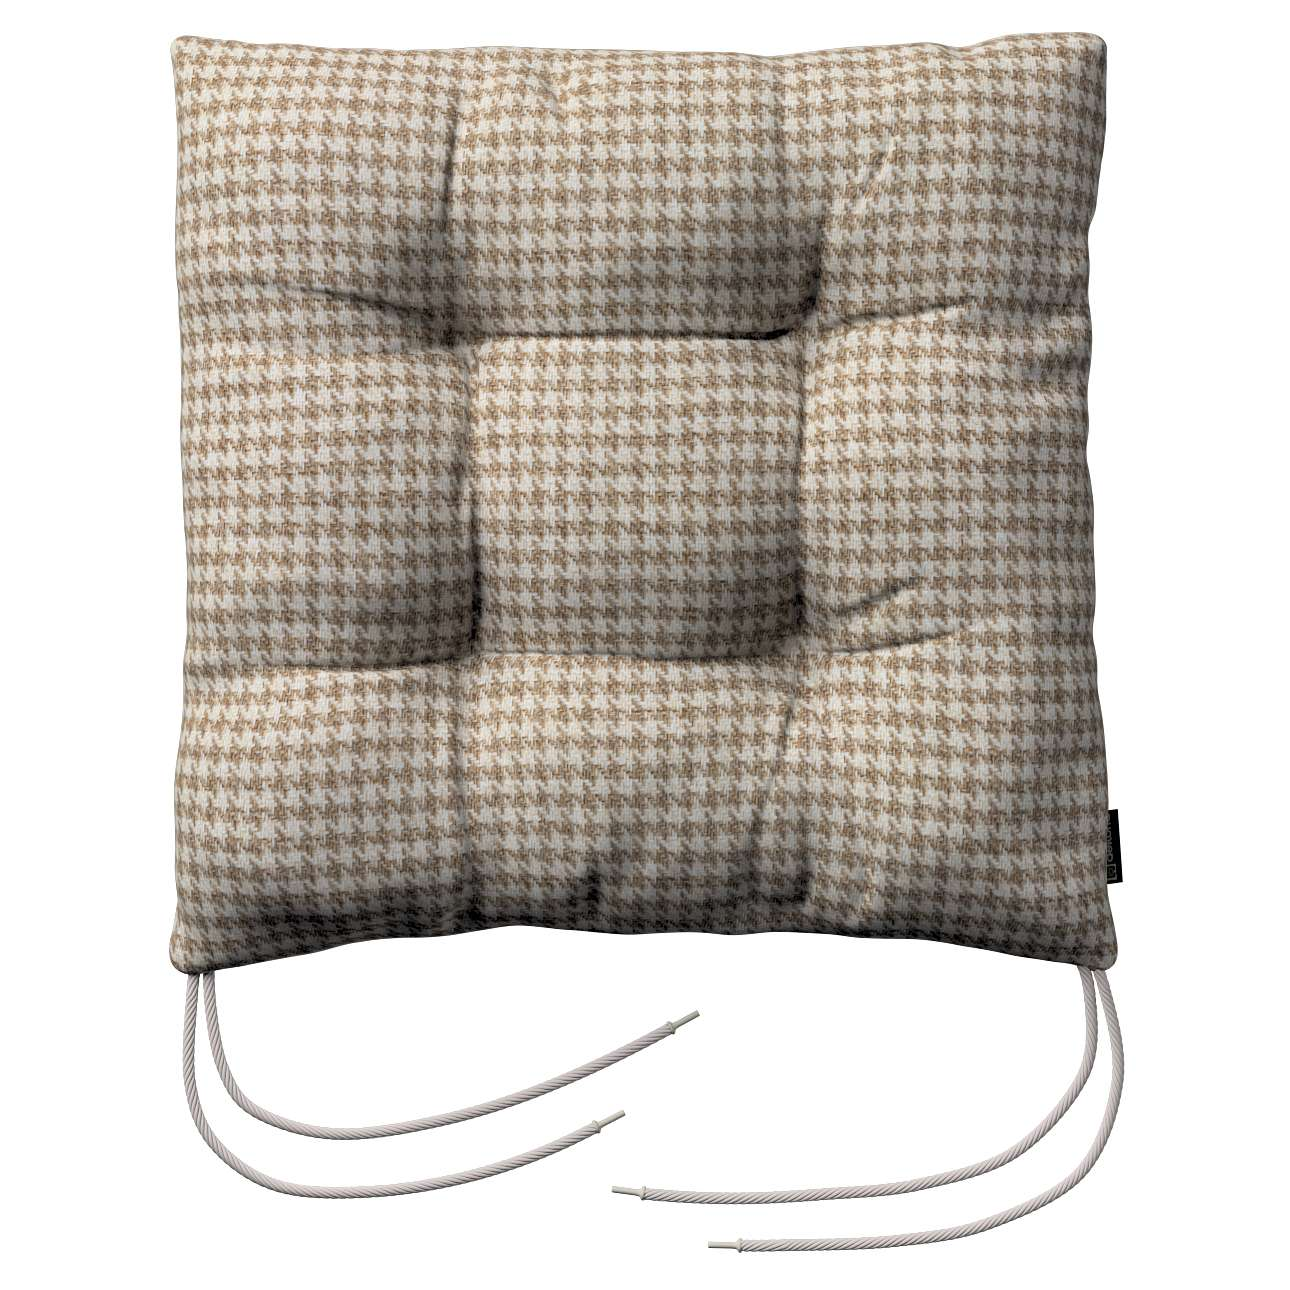 Jacek seat pad with ties 40 × 40 × 8 cm (16 × 16 × 3 inch) in collection Edinburgh, fabric: 703-12